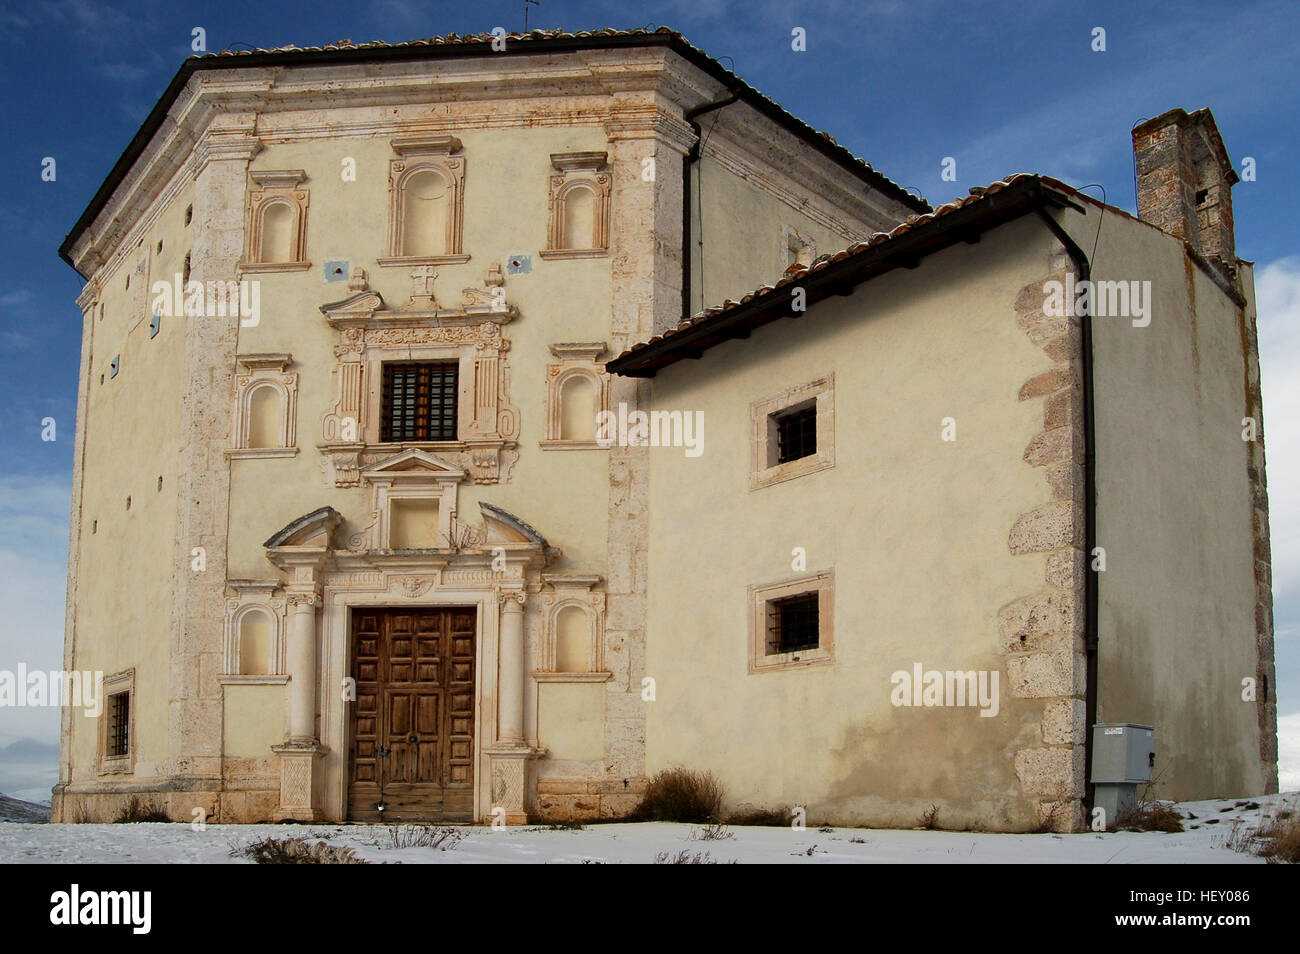 The church of St. Mary of Piety at Rocca Calascio, Abruzzo Stock Photo